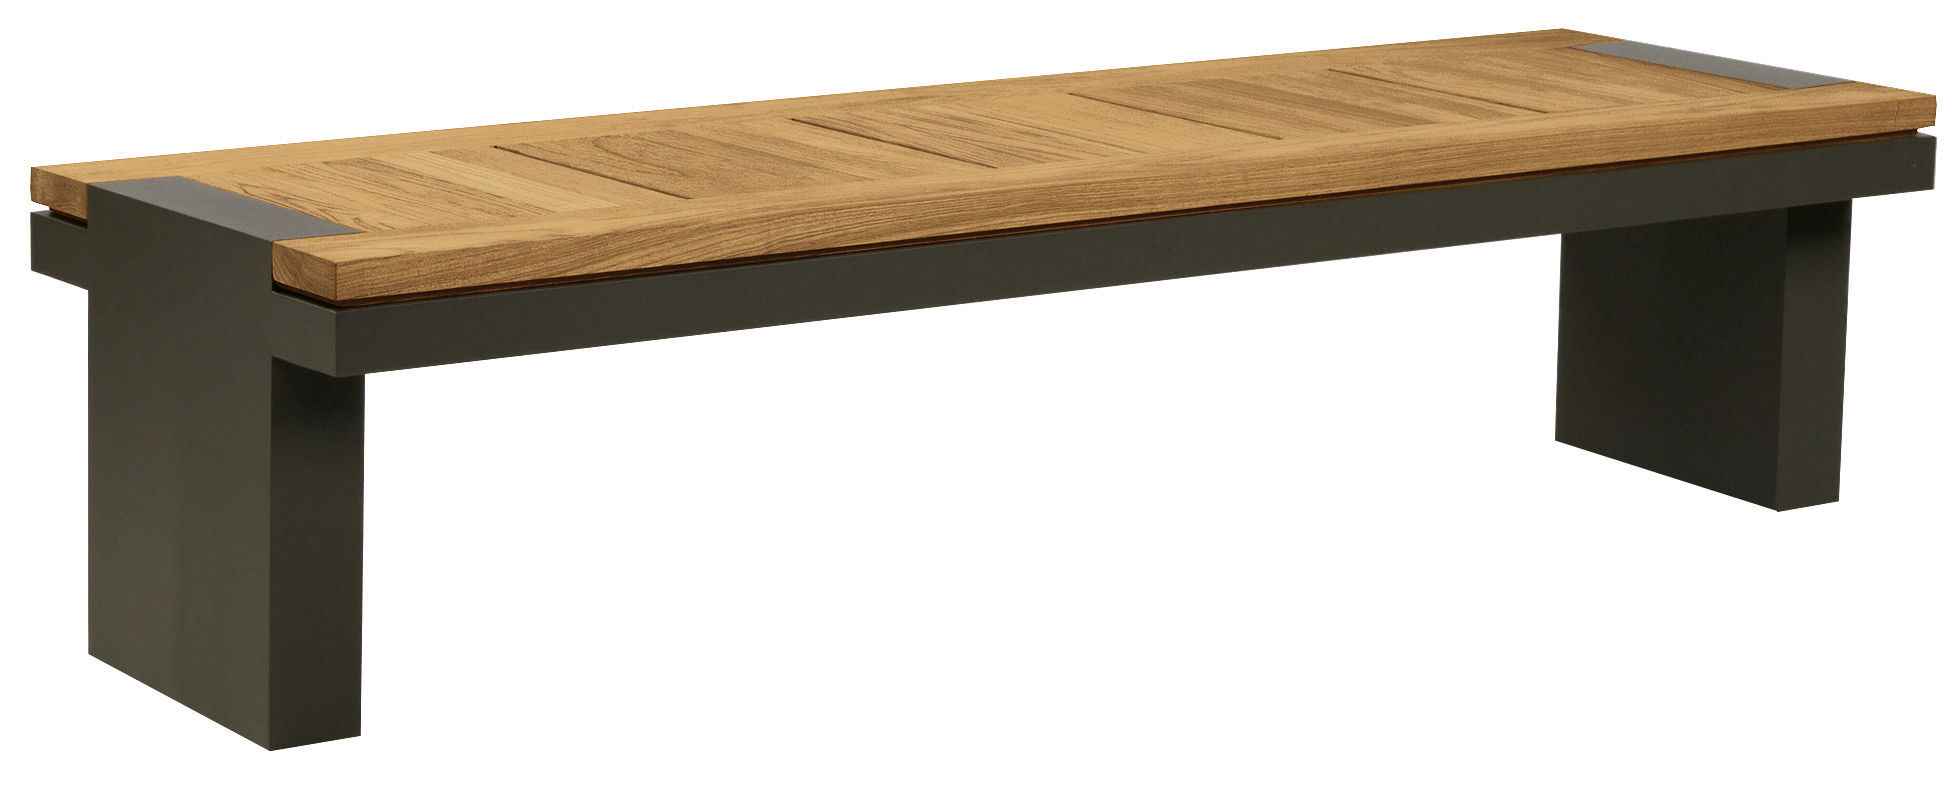 Garden bench contemporary teak PENINSULA by Terry Hunziker